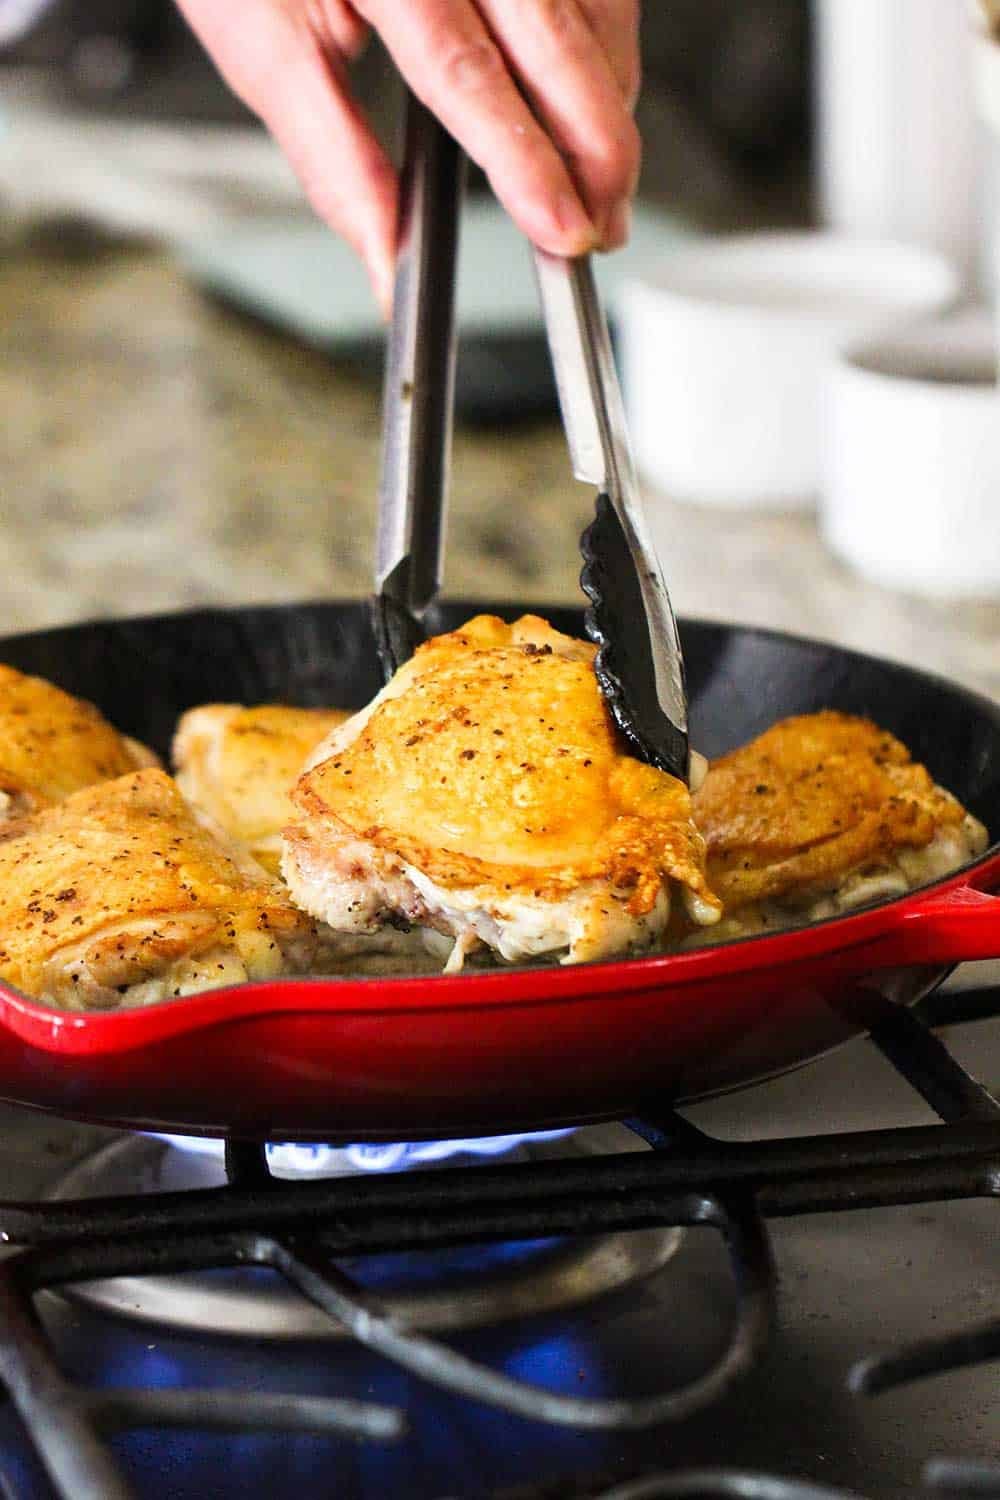 A hand using a pair of tongs to sear chicken thighs in a large red skillet on the stove.